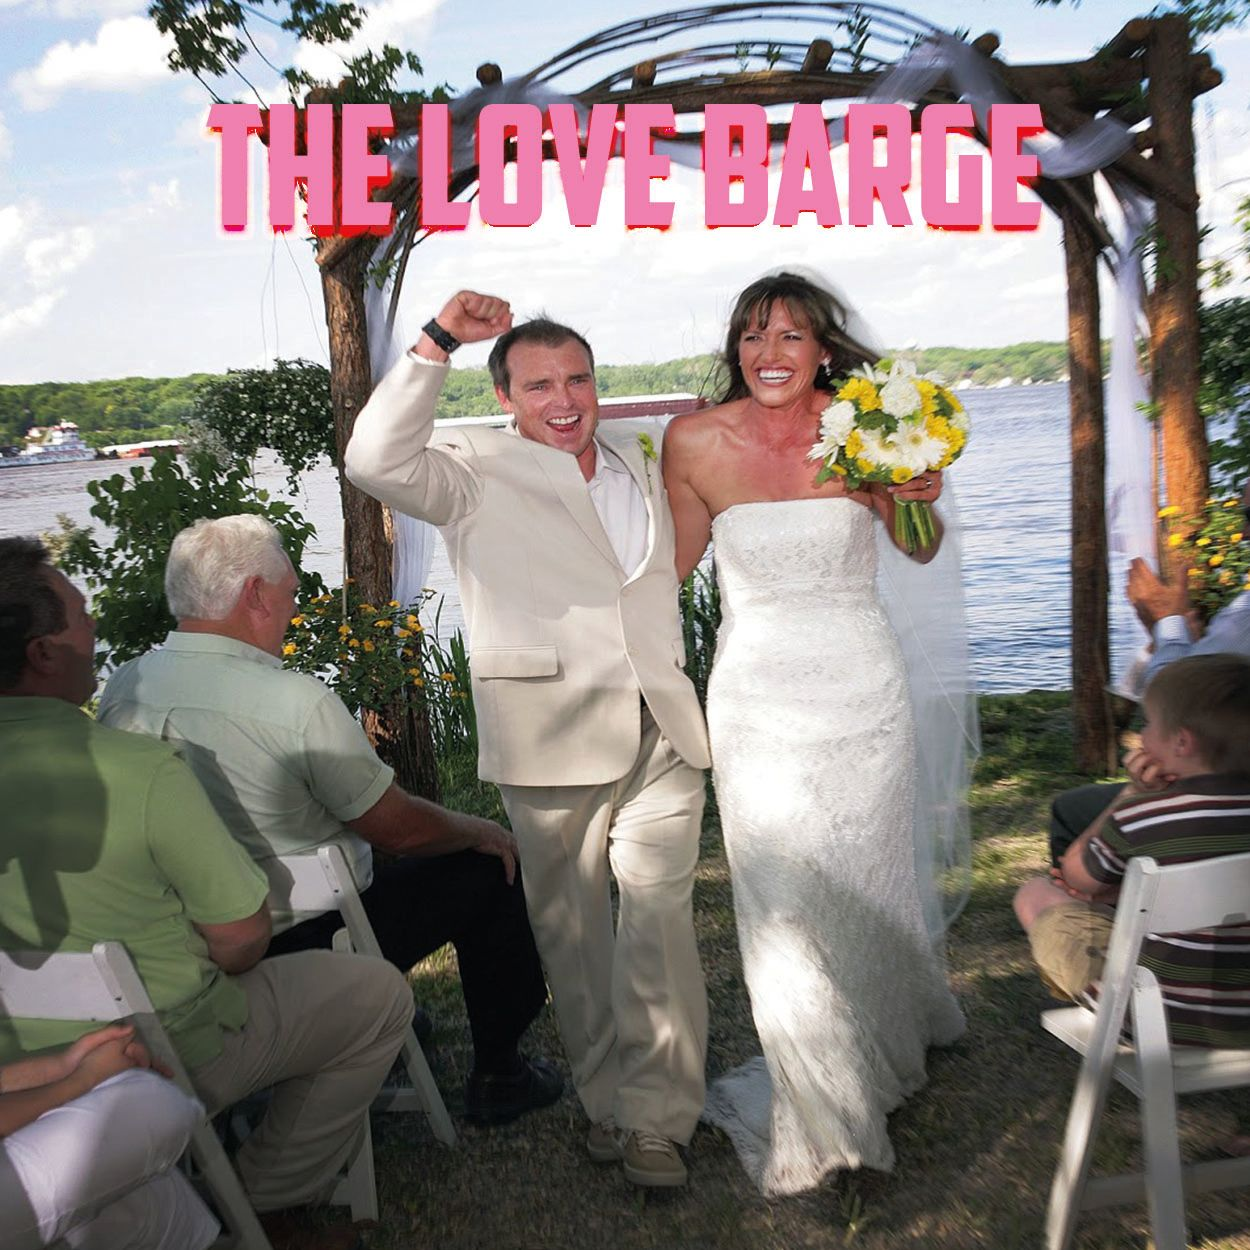 The Love Barge